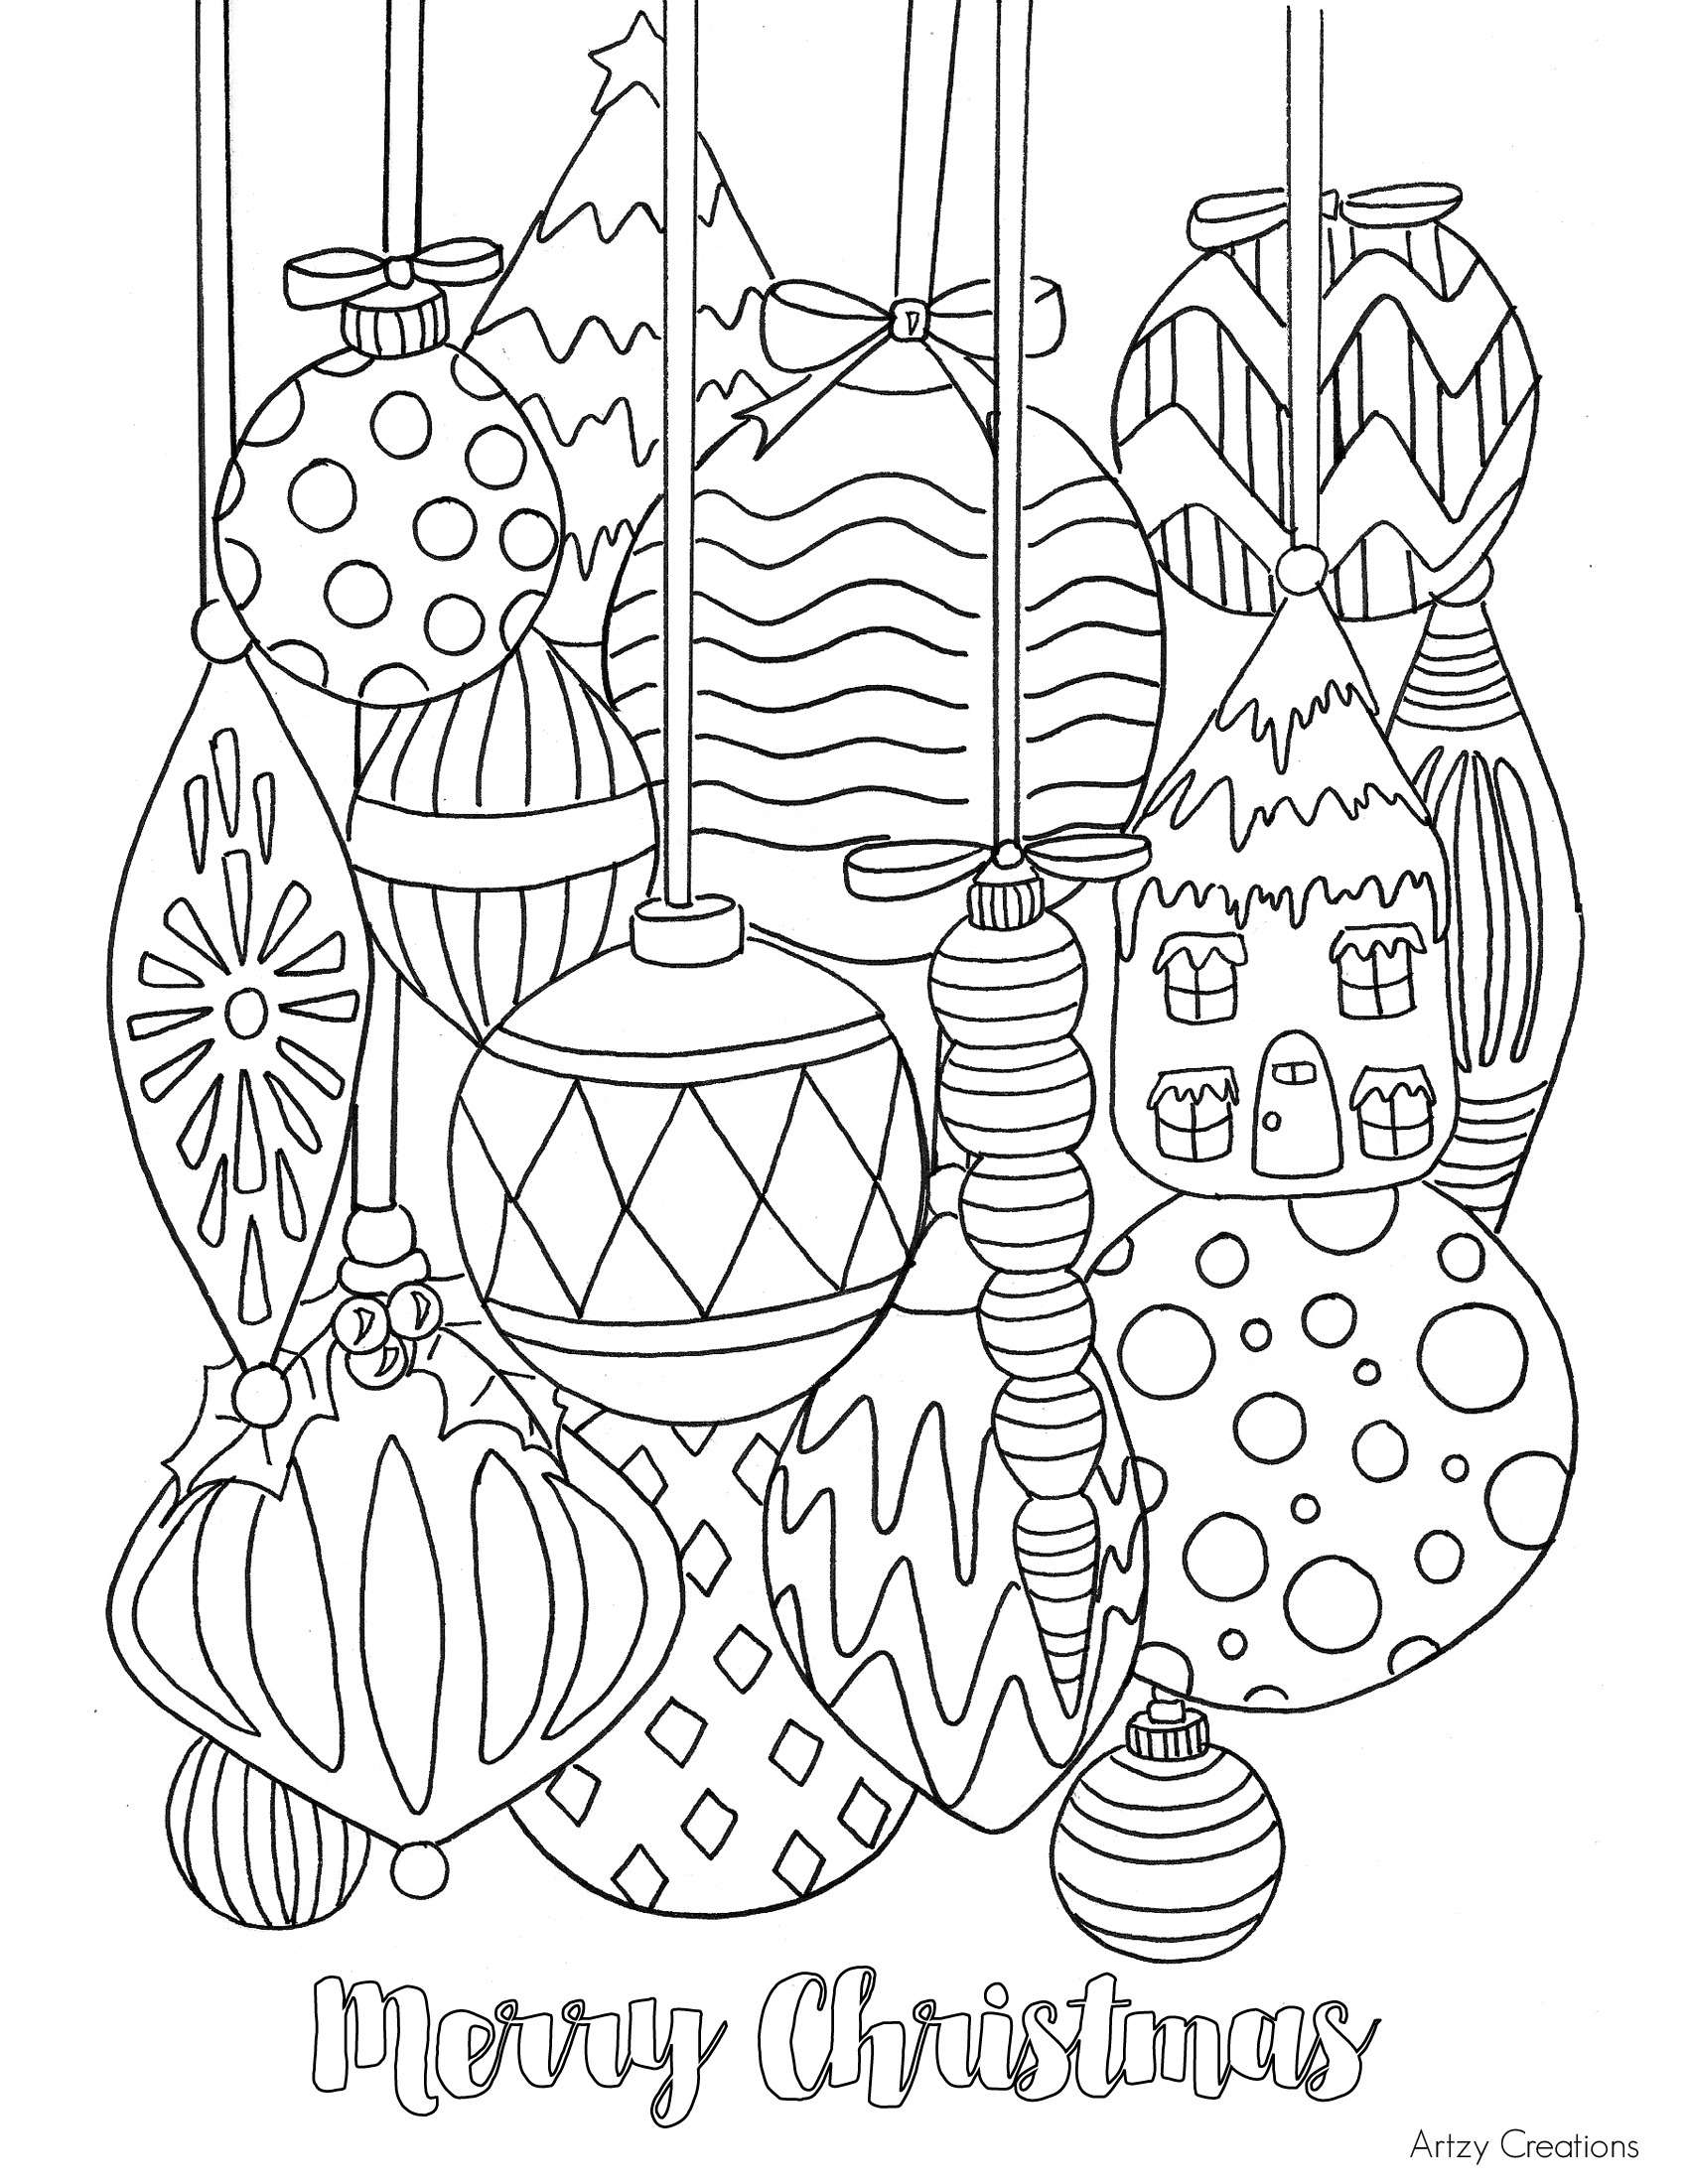 Christmas Coloring Pages For Church With Free Printable